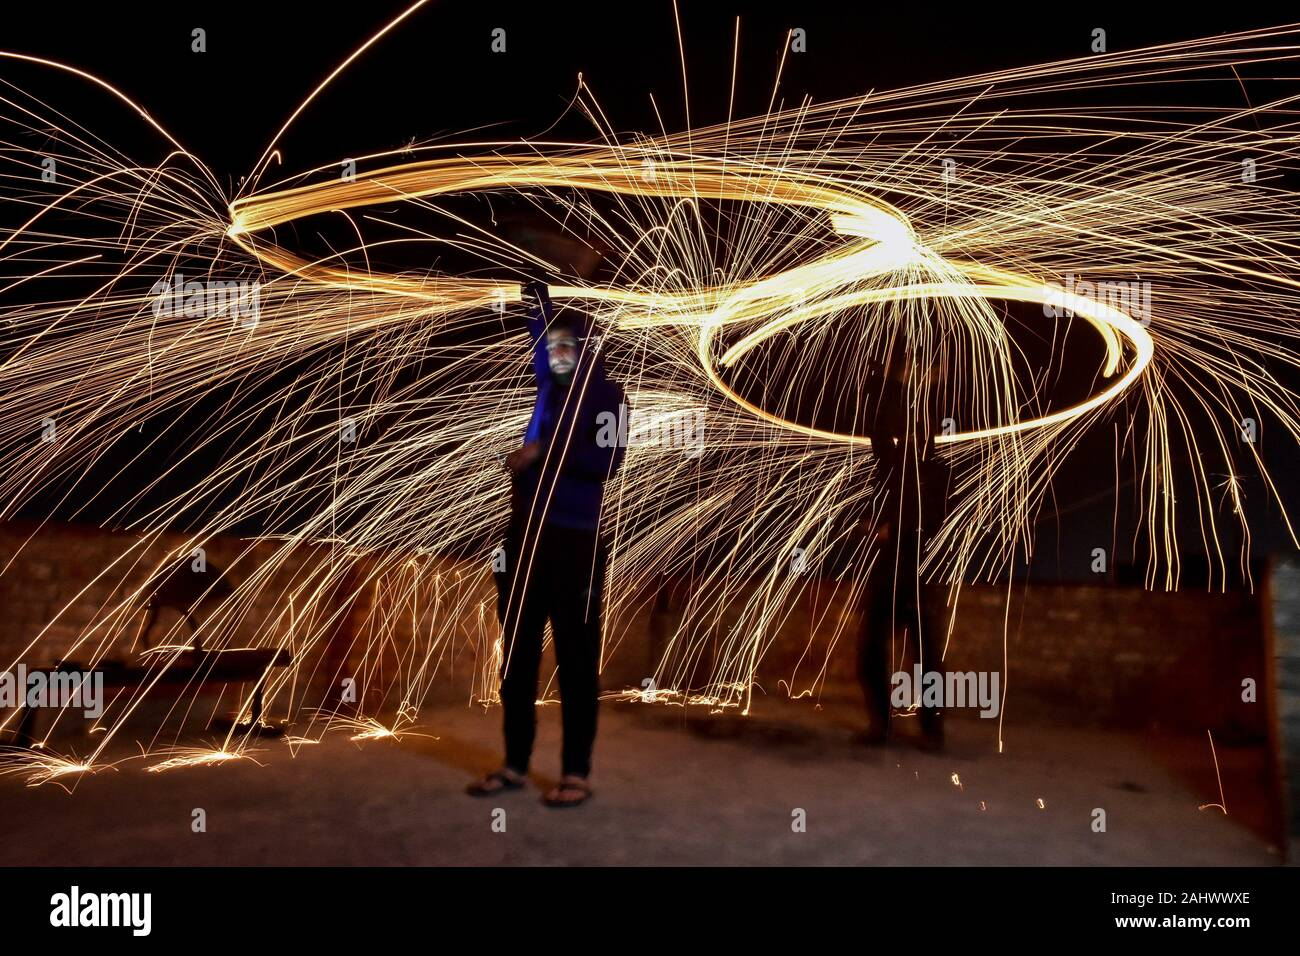 Rajpura, India. 1st Jan, 2020. Locals spin burning steel wool with slings performing light painting during the New Year celebrations in Rajpura town. Credit: Saqib Majeed/SOPA Images/ZUMA Wire/Alamy Live News Stock Photo